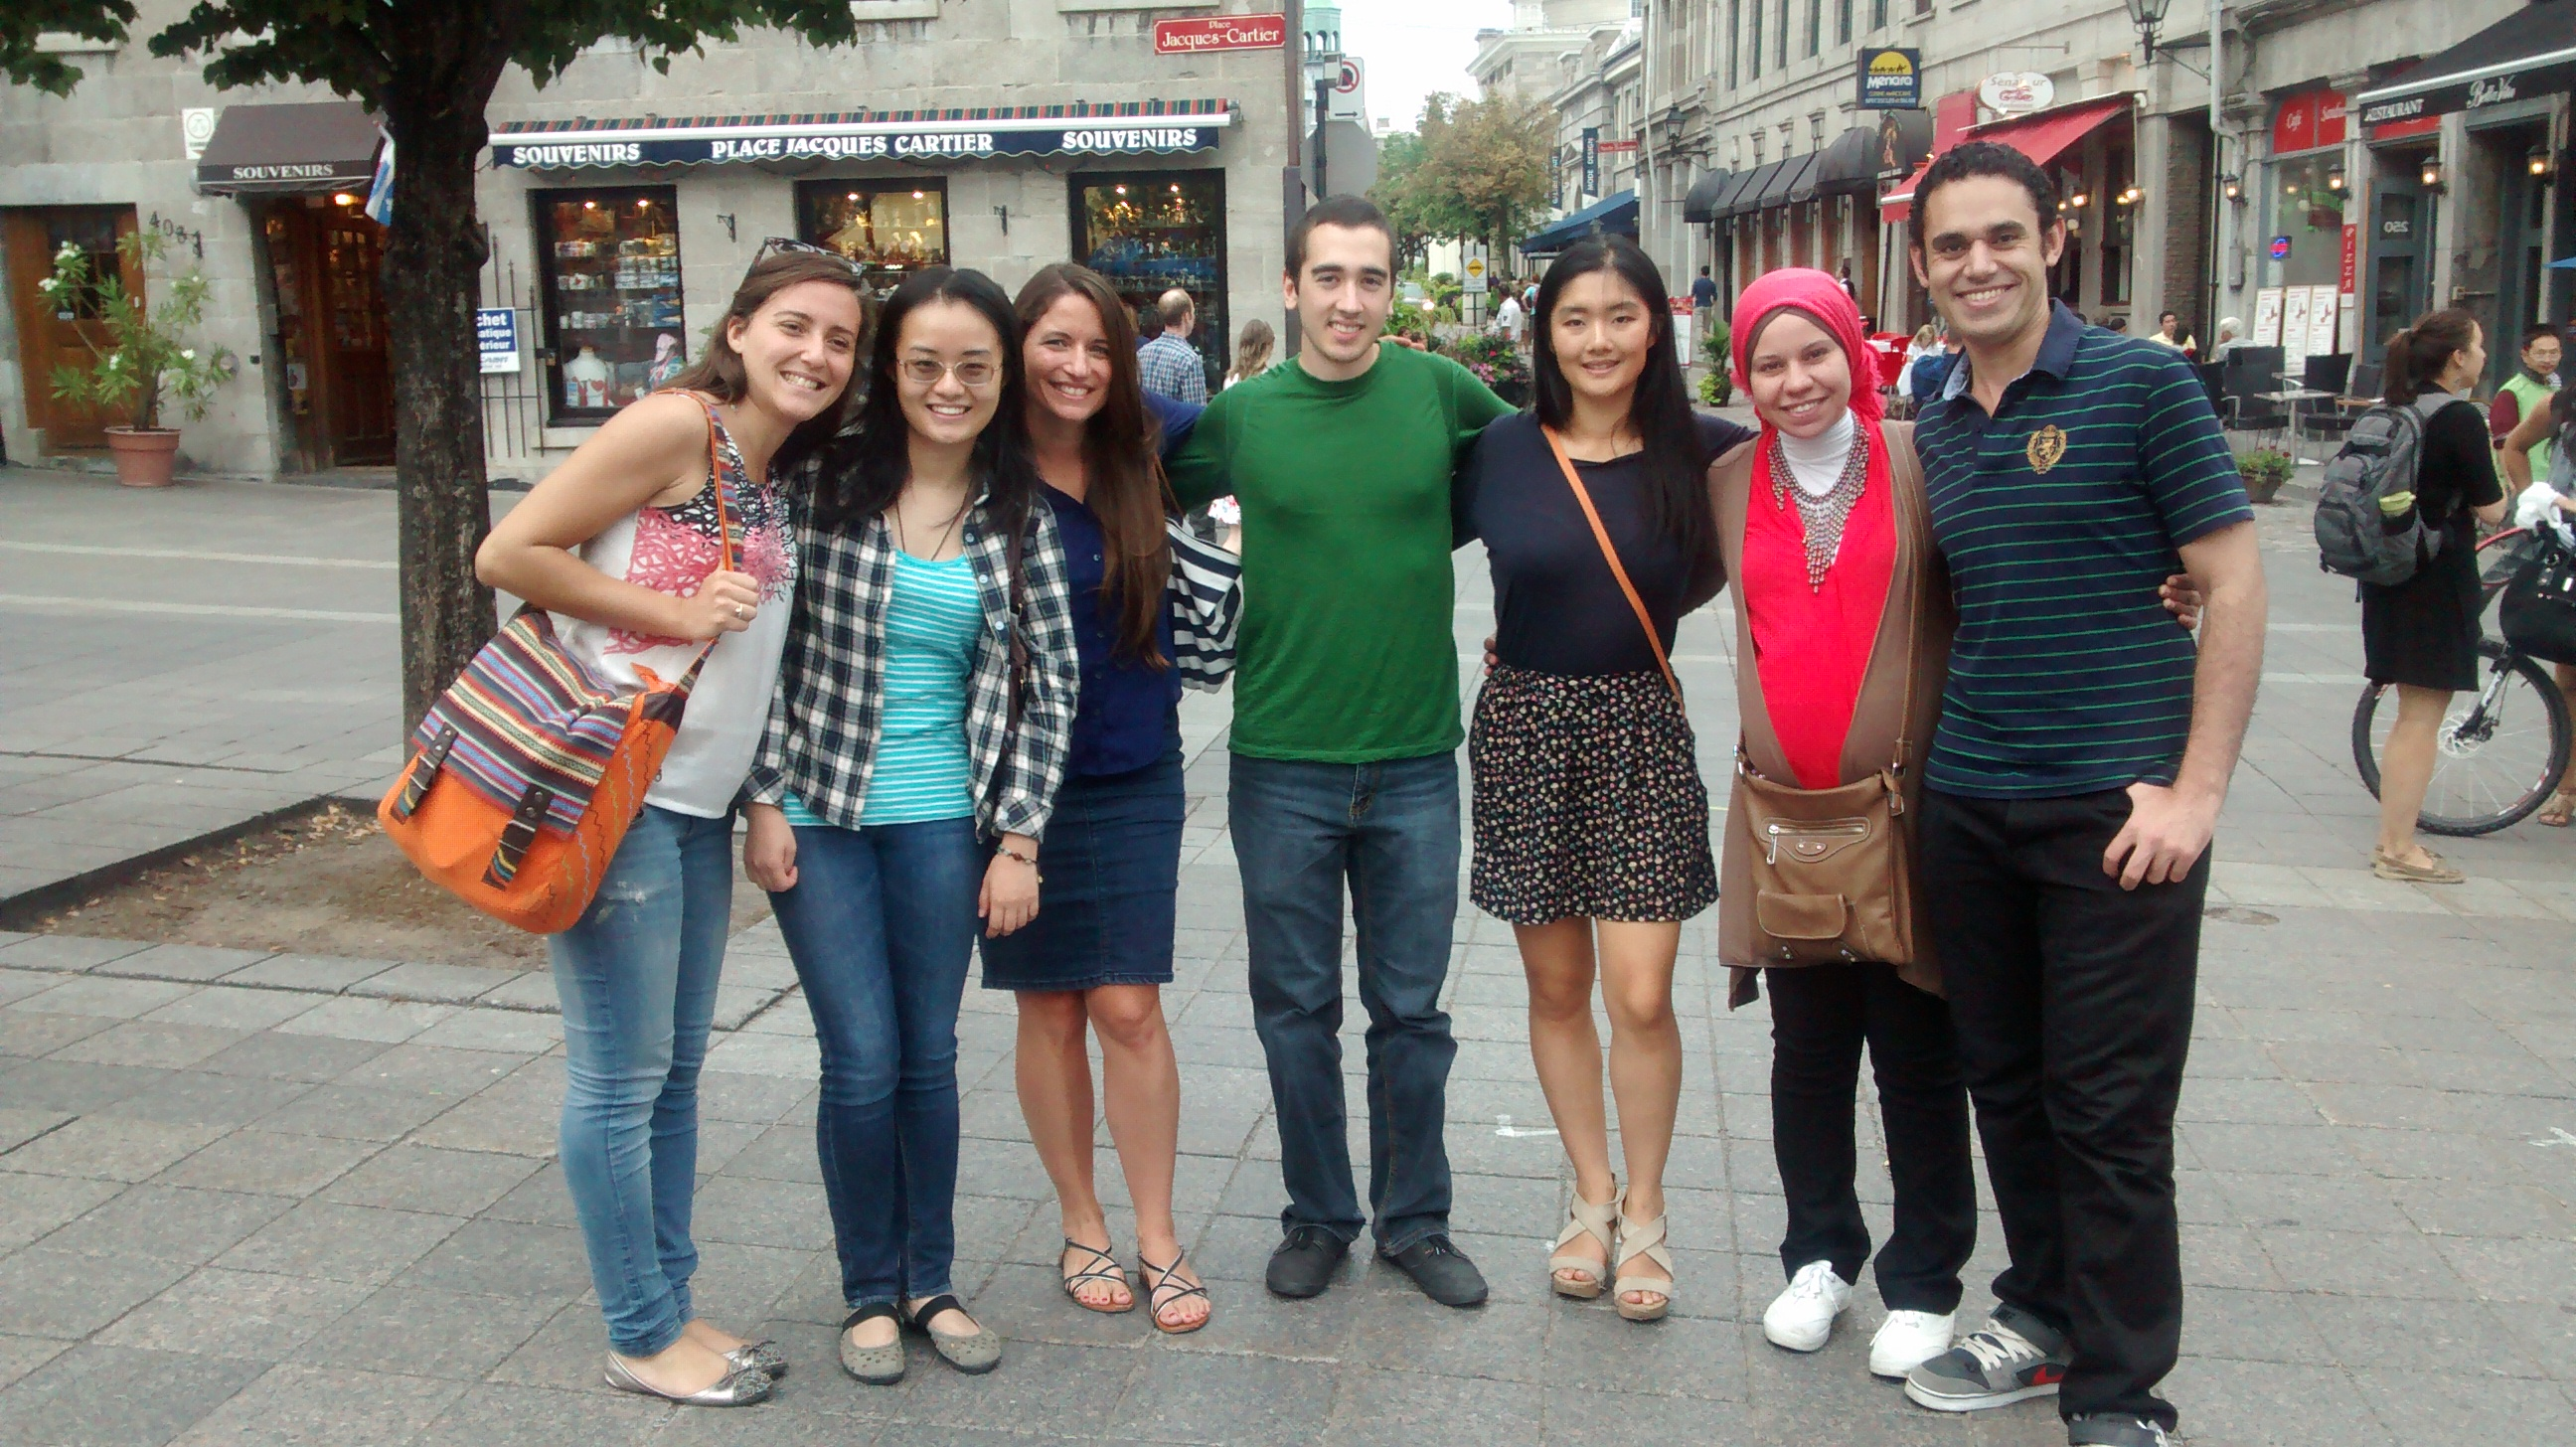 Old Montreal outing